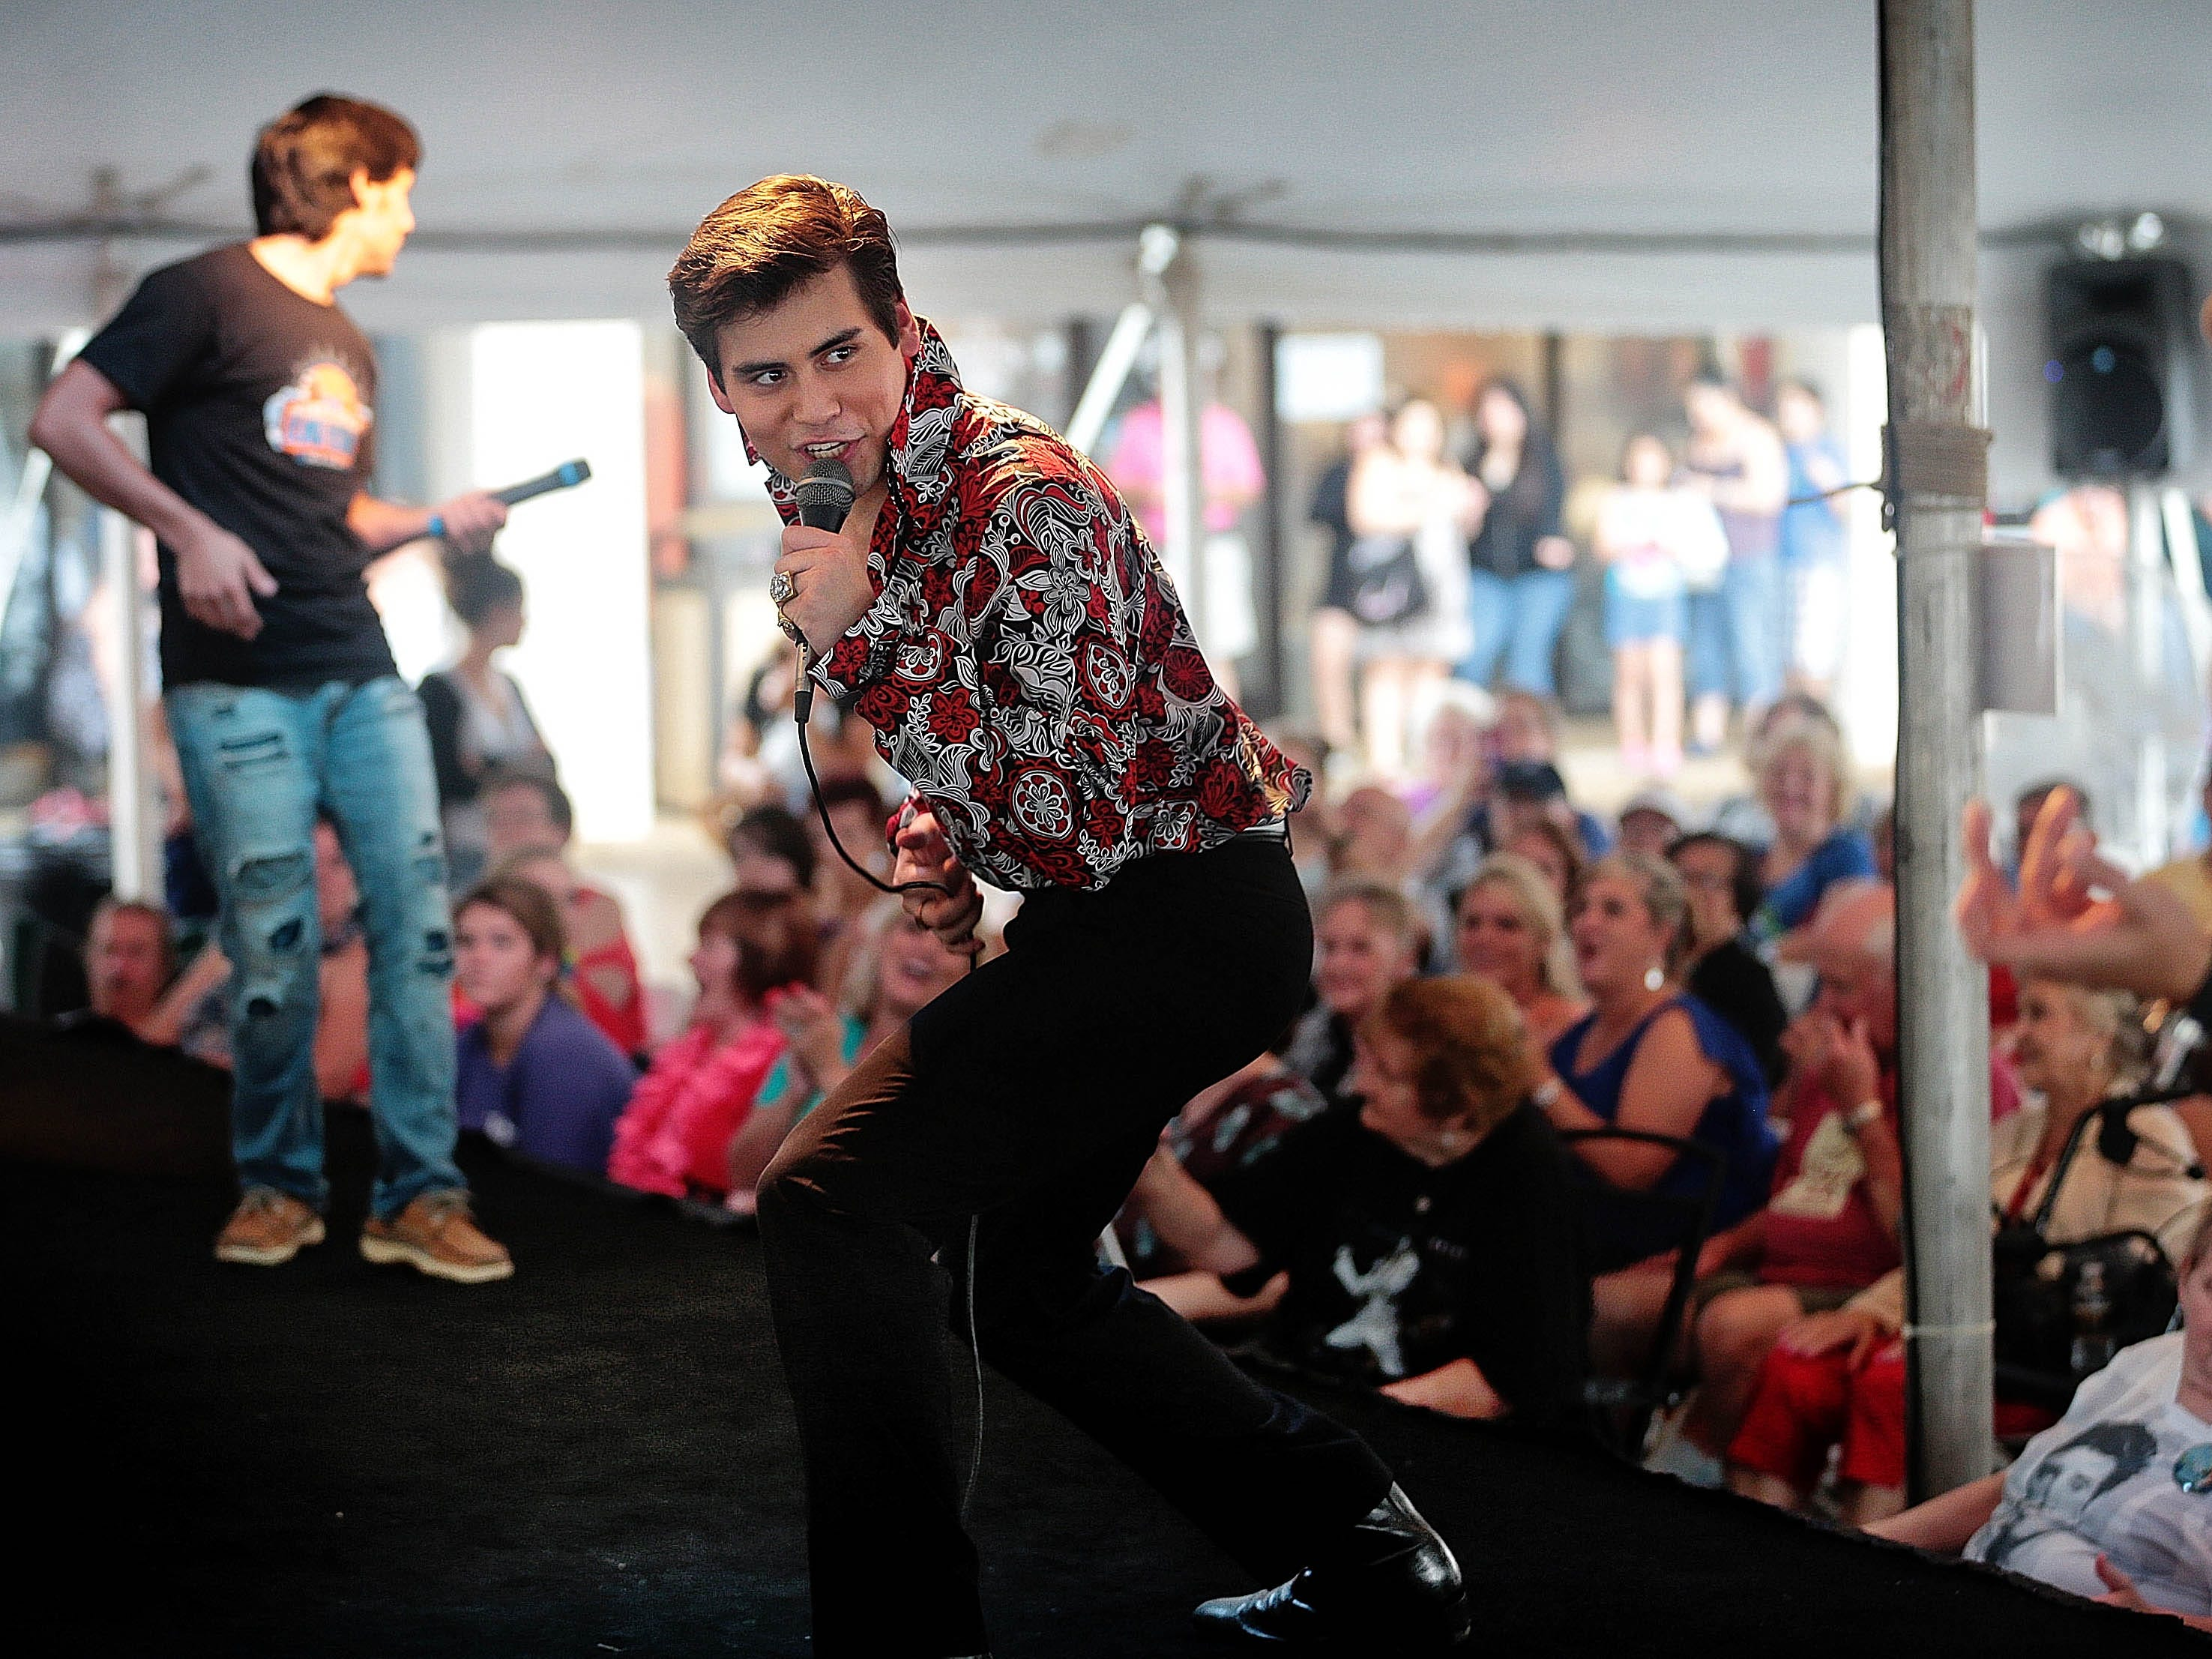 August 16, 2016 - Elvis Presley tribute artist Taylor Rodriguez (center) performs in the tent at Graceland Crossing with Cote Deonath (left) and Ben Thompson for a crowd of  Elvis fans who were still basking in the lingering Elvis aura a day after the annual vigil. (Jim Weber/ The Commercial Appeal)